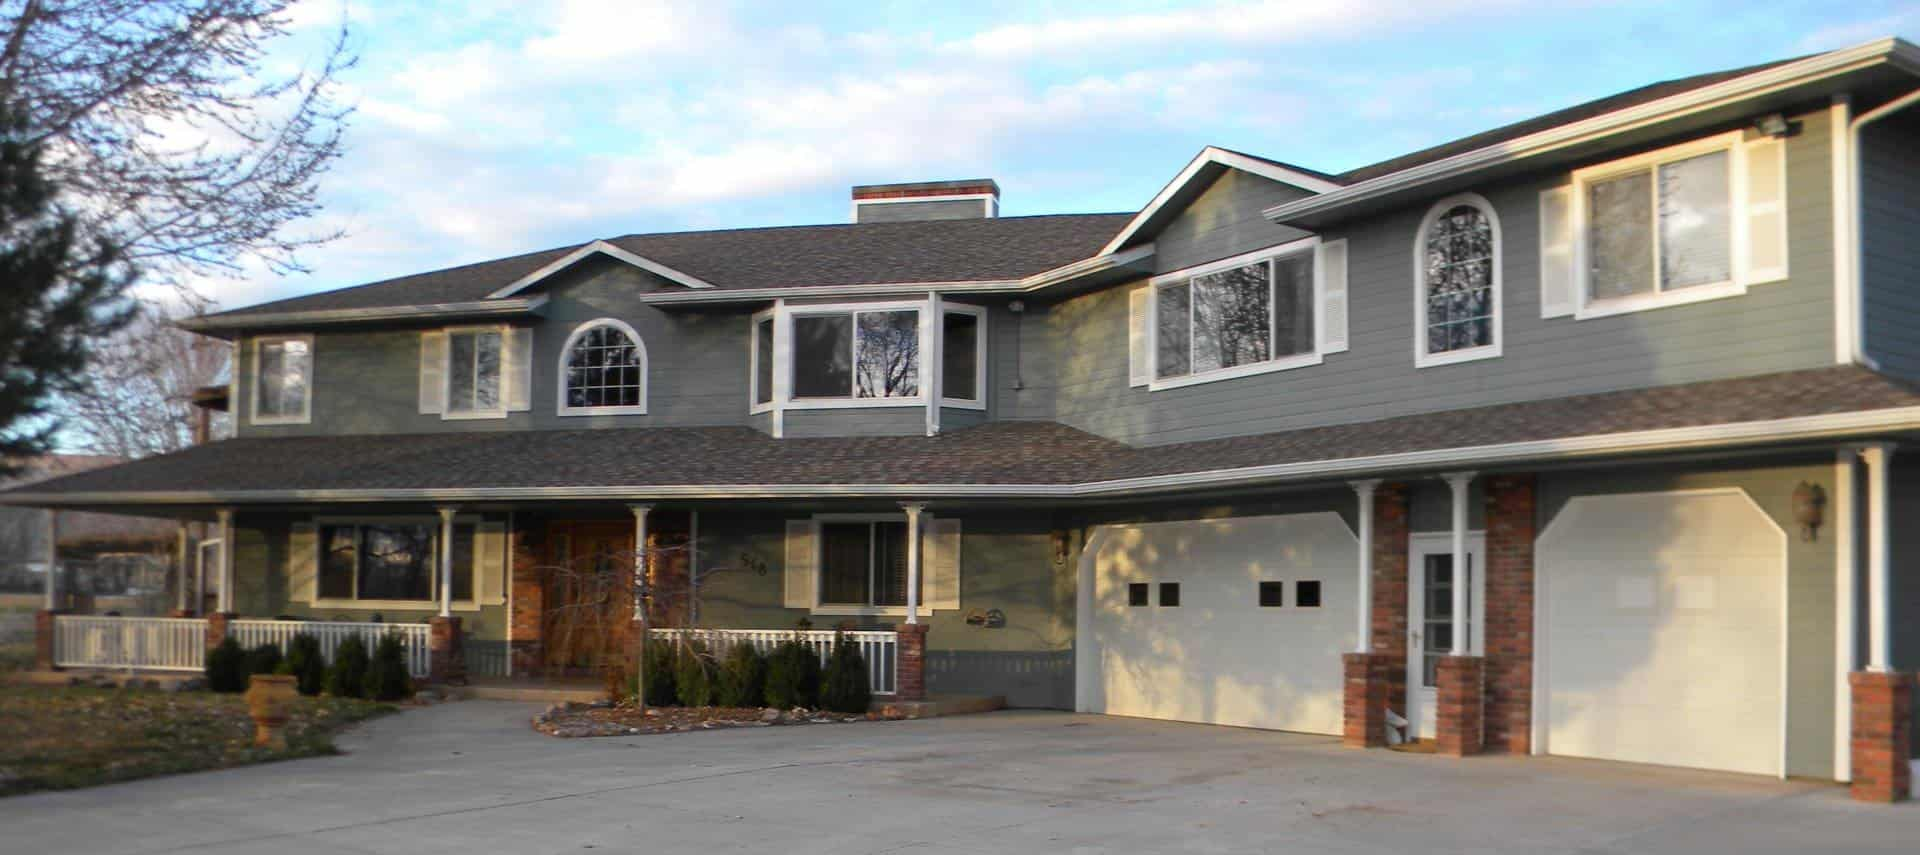 Large house painted gray with white trim